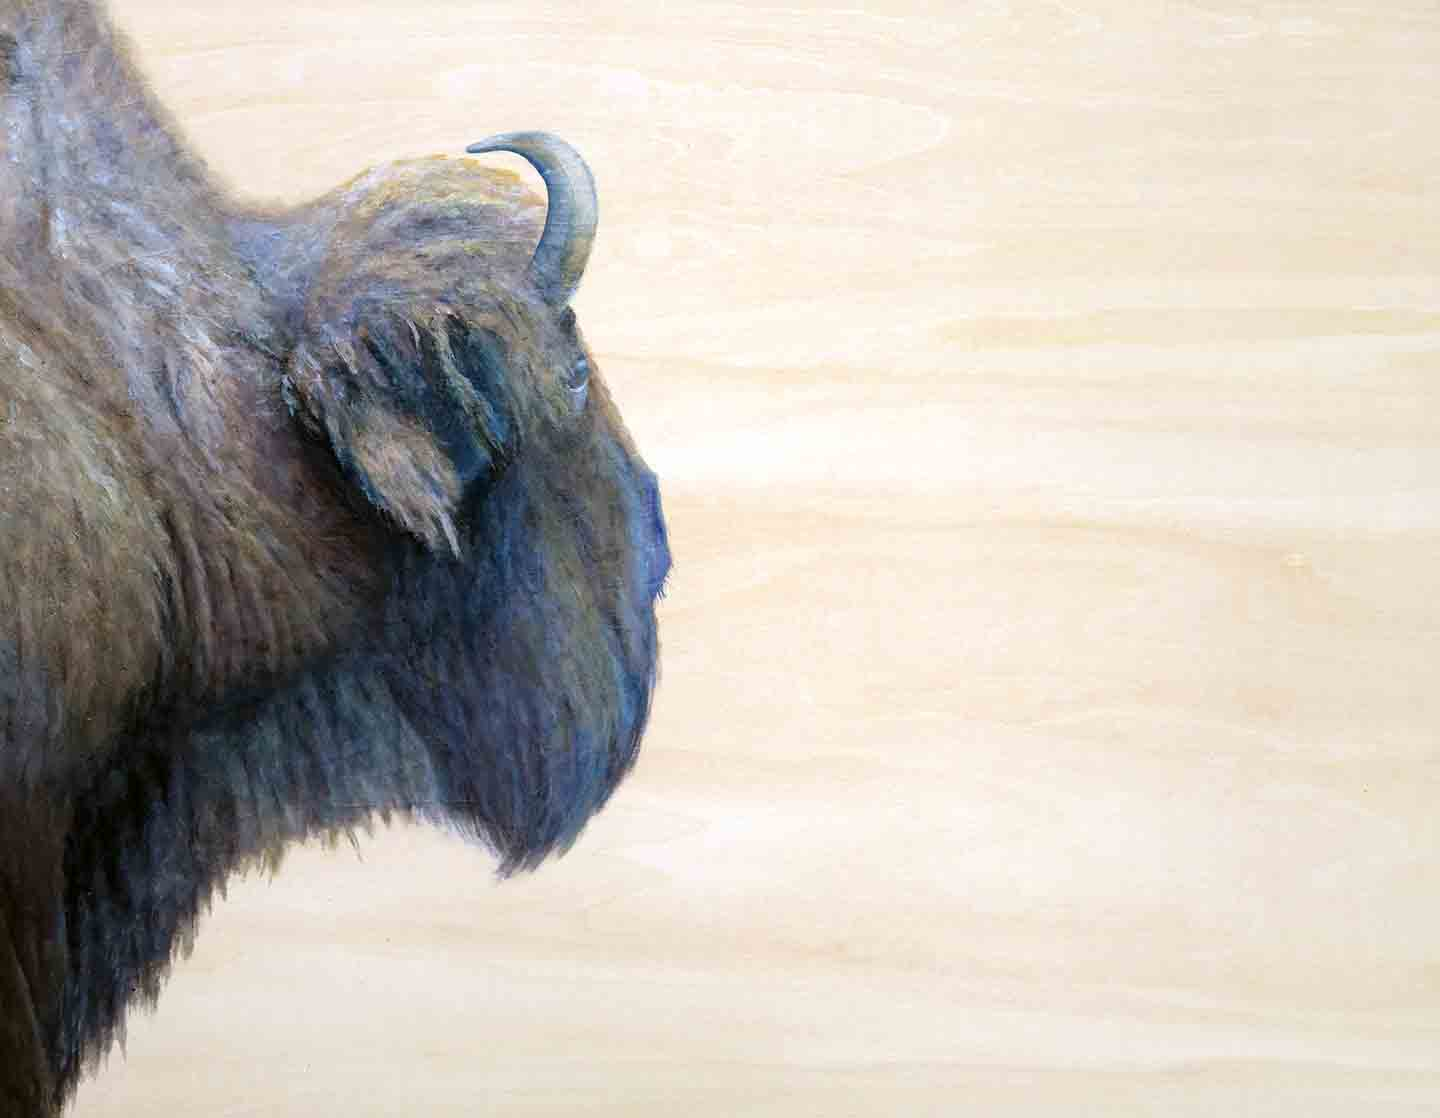 Painting of bison in profile by Shelby Prindaville, acrylic on wood